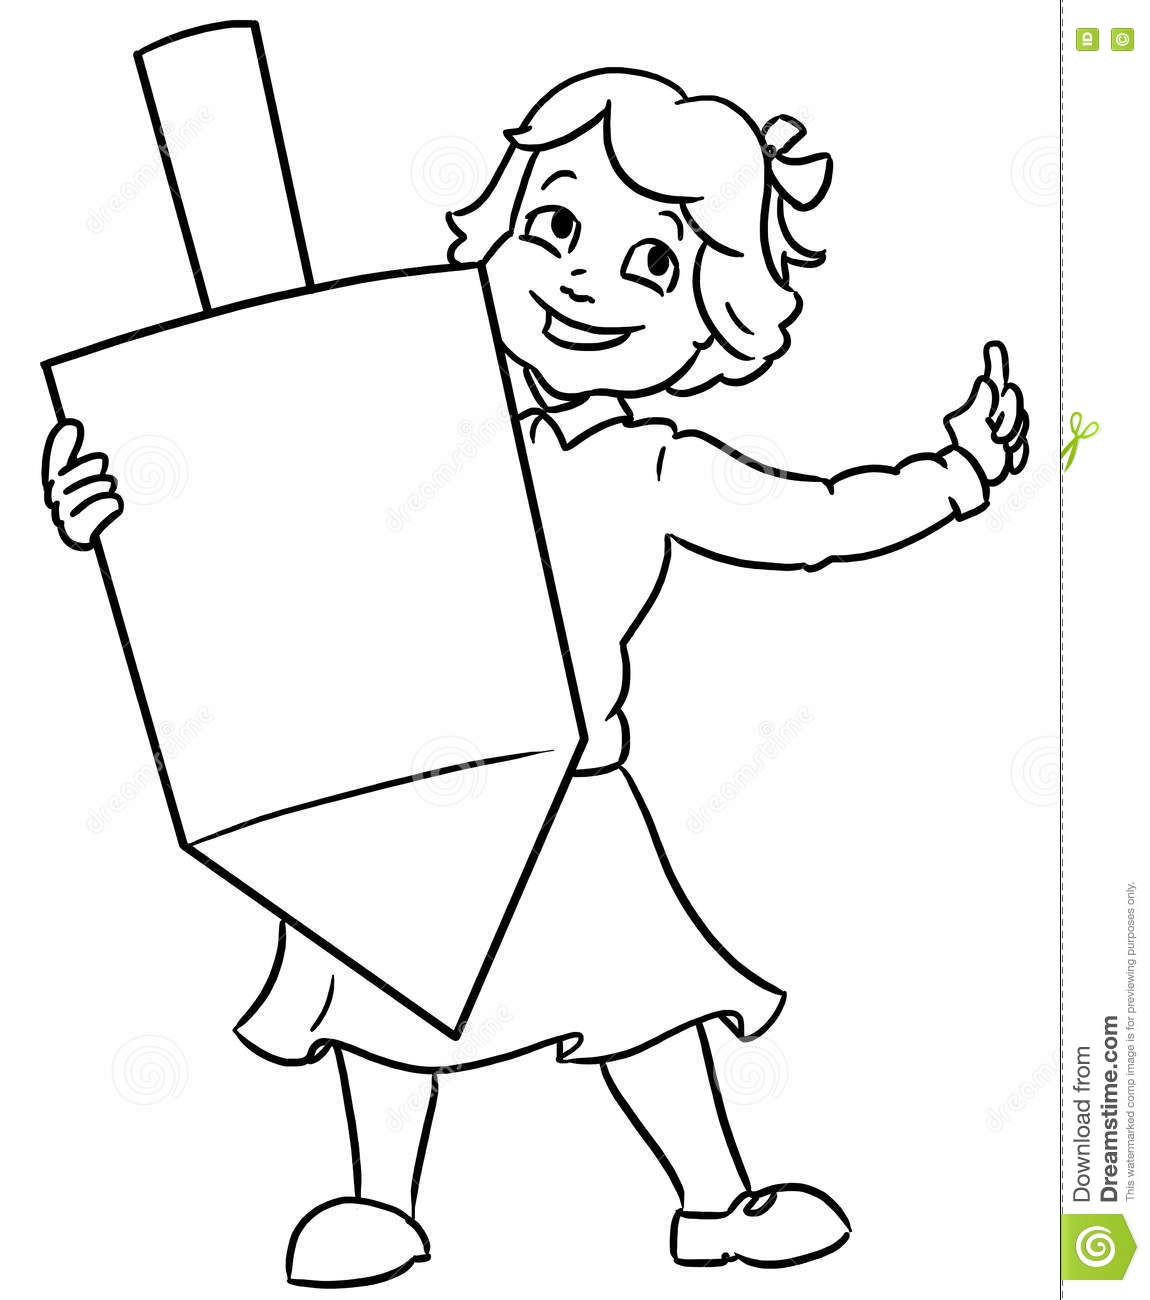 Little Jewixh Girl Holding Large Channuka Dreidel Stock Illustration